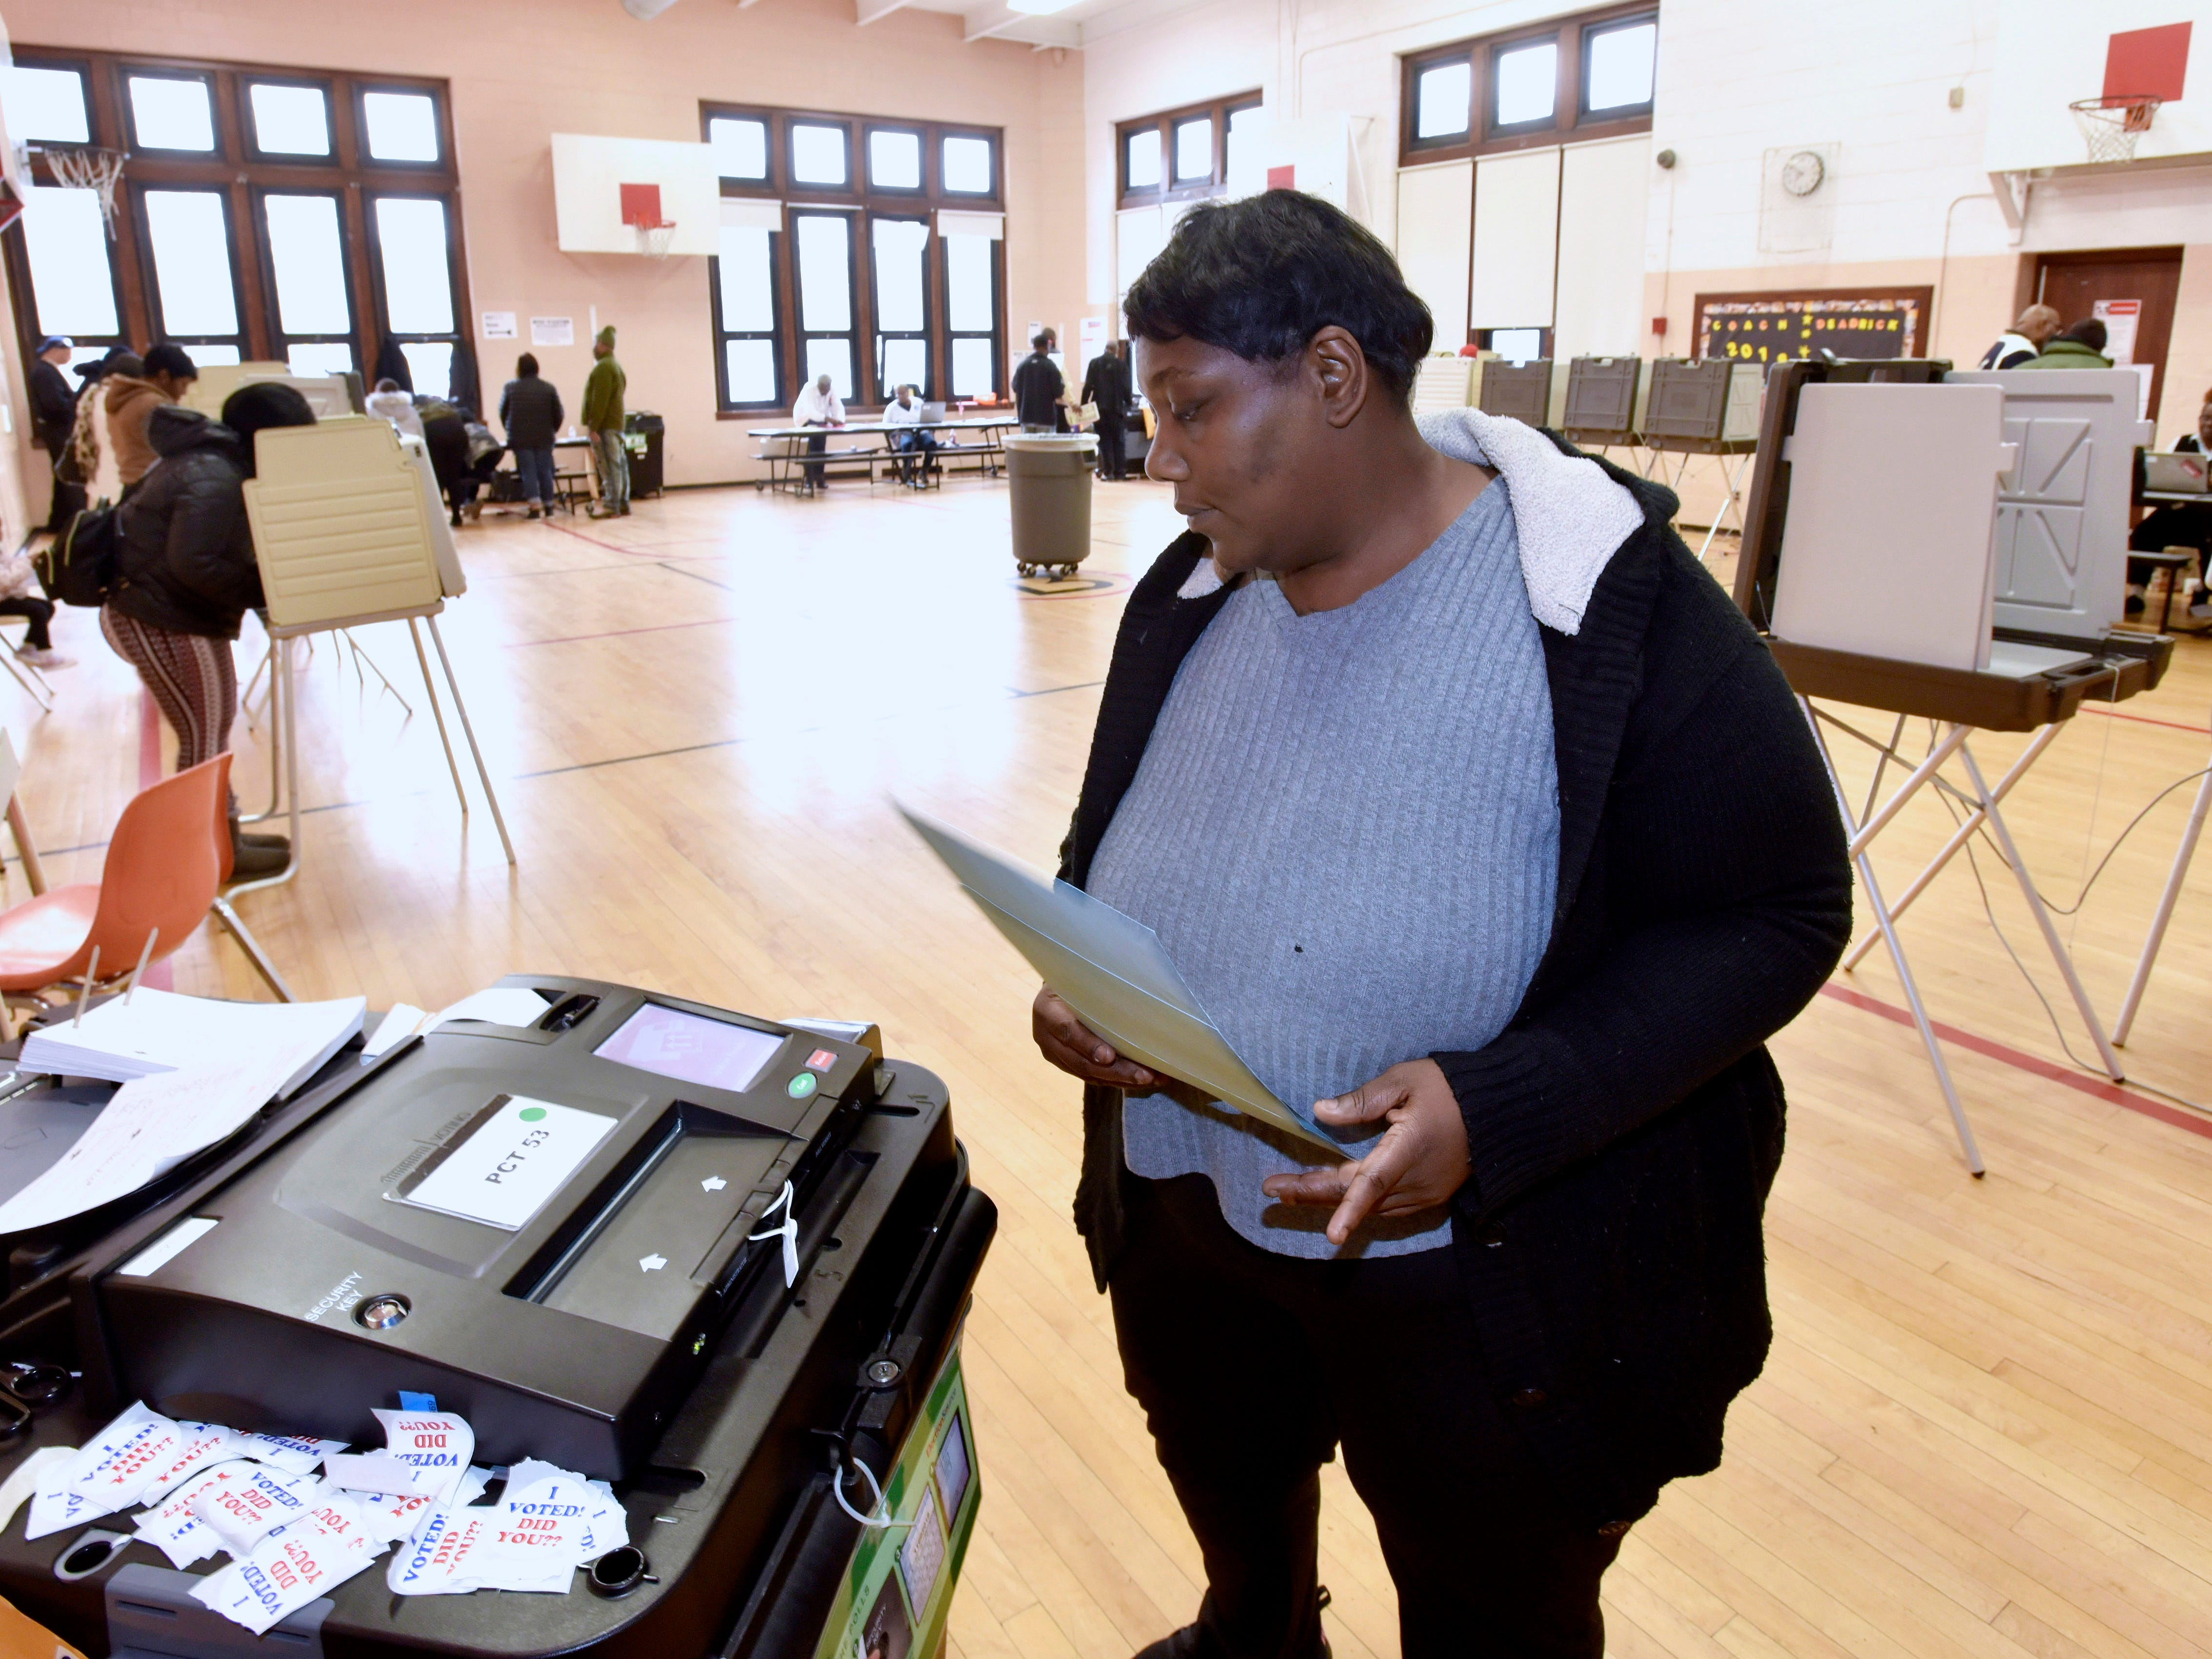 Charmiria Ashford of Detroit casts her ballot in the gym at Brewer Elementary School Tuesday afternoon in Detroit.